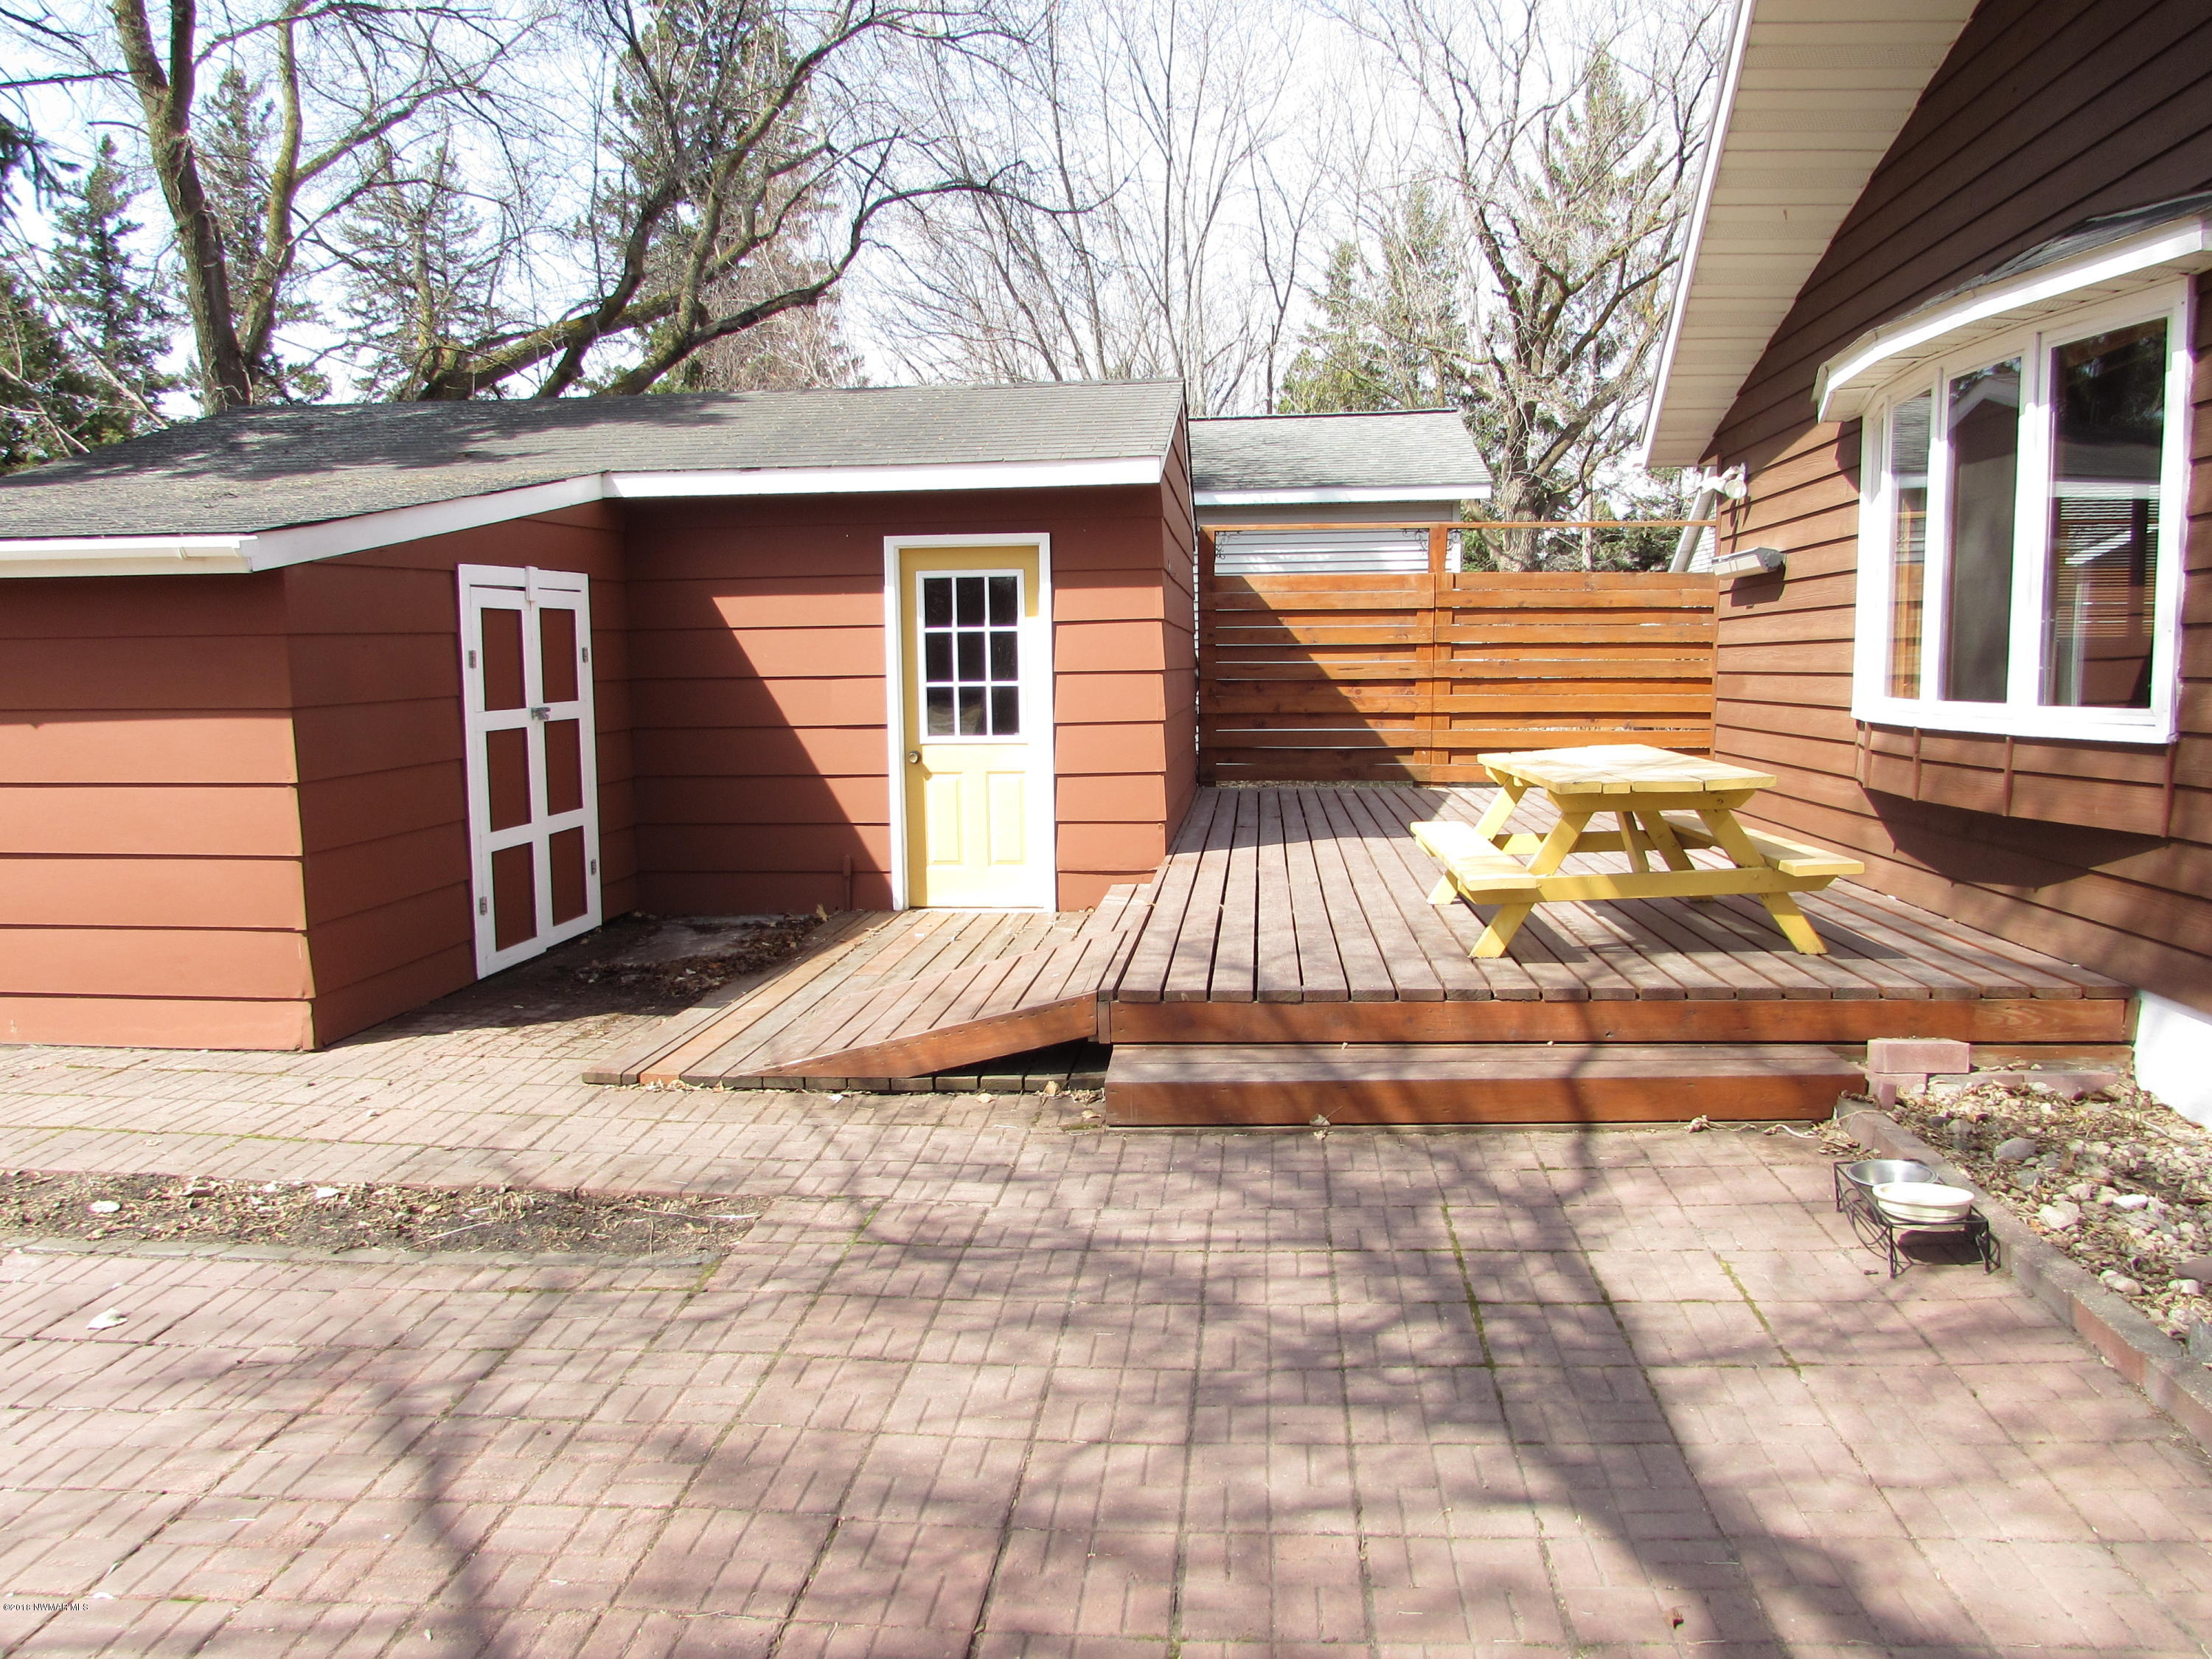 East Exterior - View 6 - Garden Shed and Handicap Accessible Wood Deck